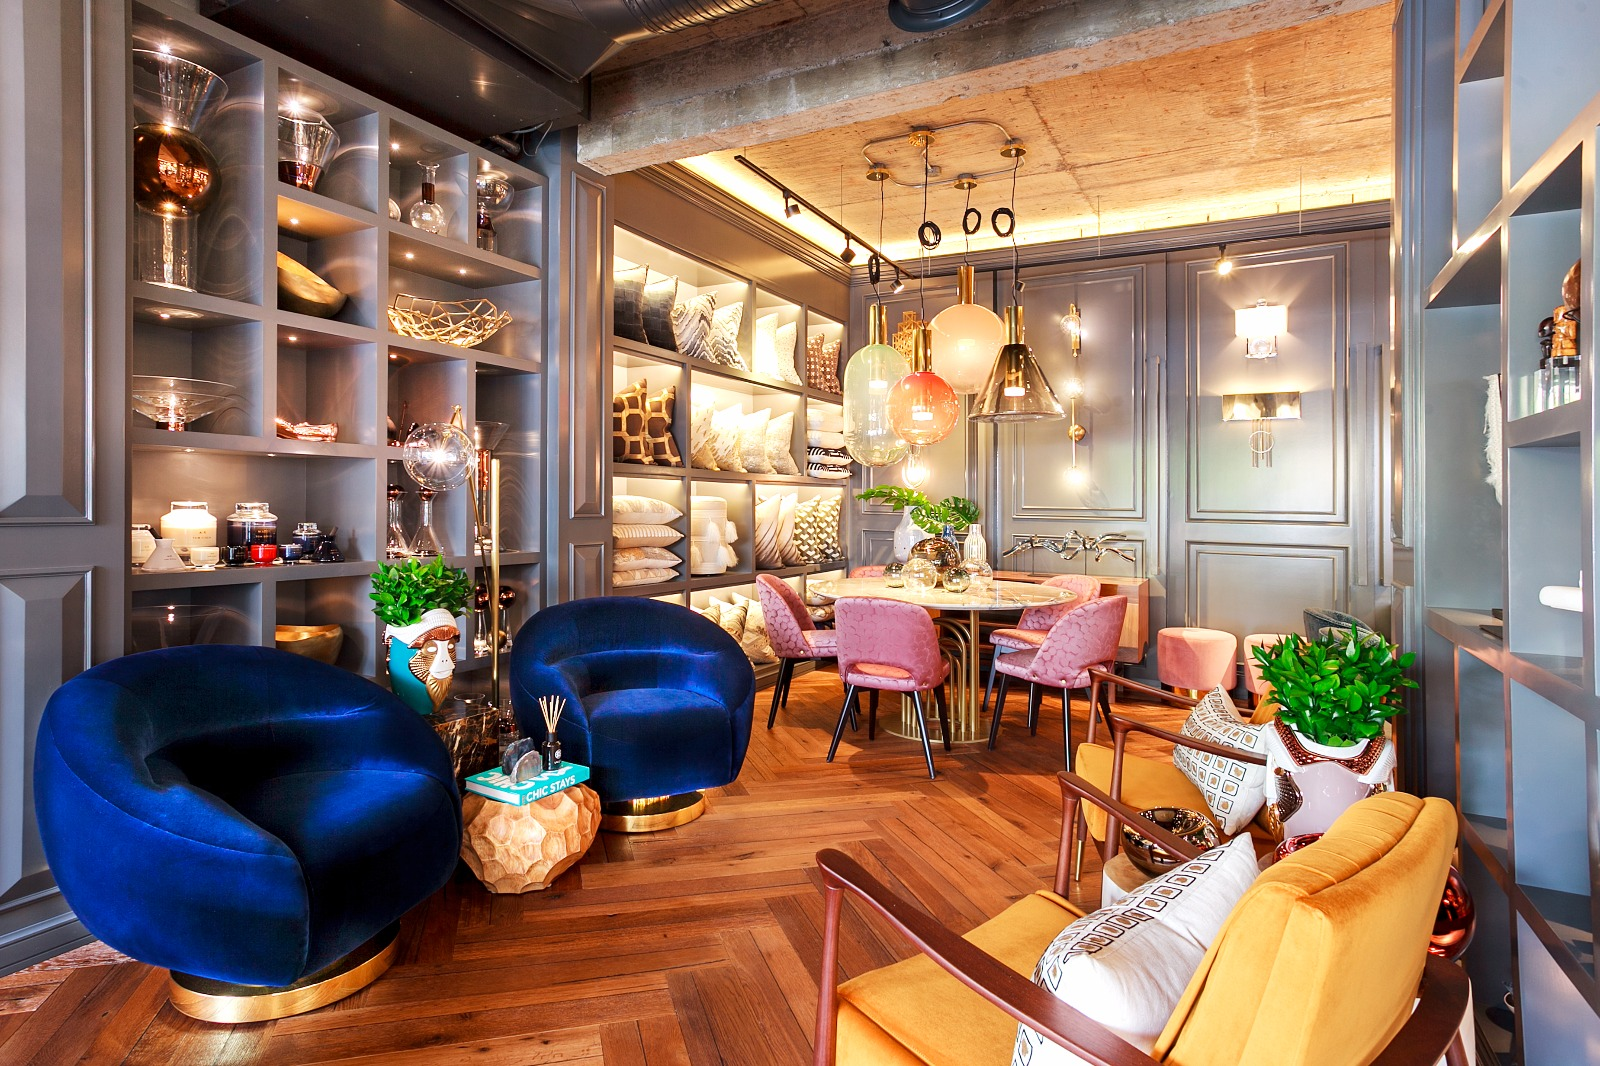 This Interior Design Showroom Boasts The Best Of Mid